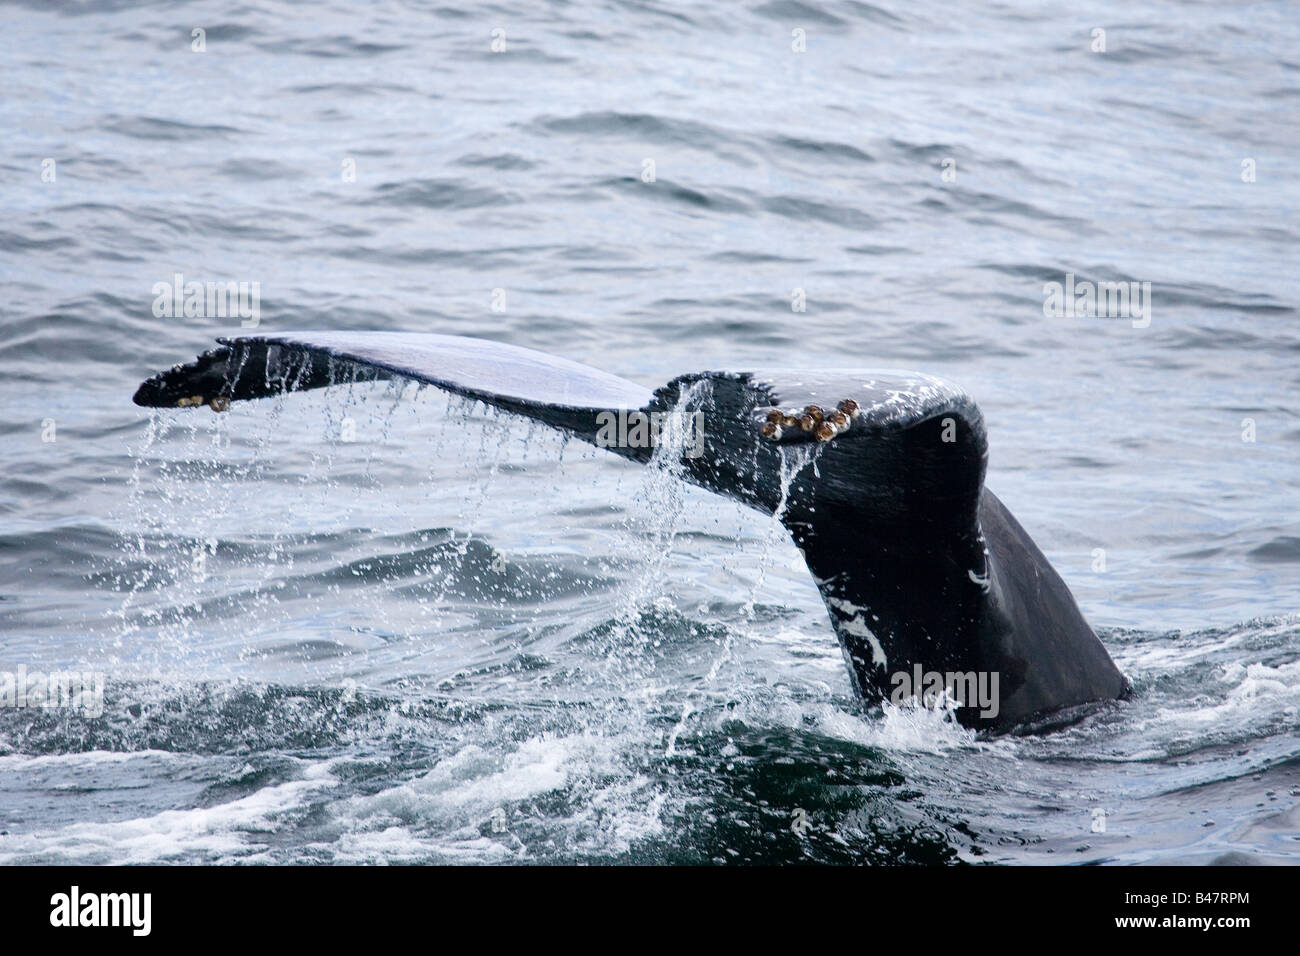 Tail of Humpbacked whale with barnacles off Cape Cod - Stock Image